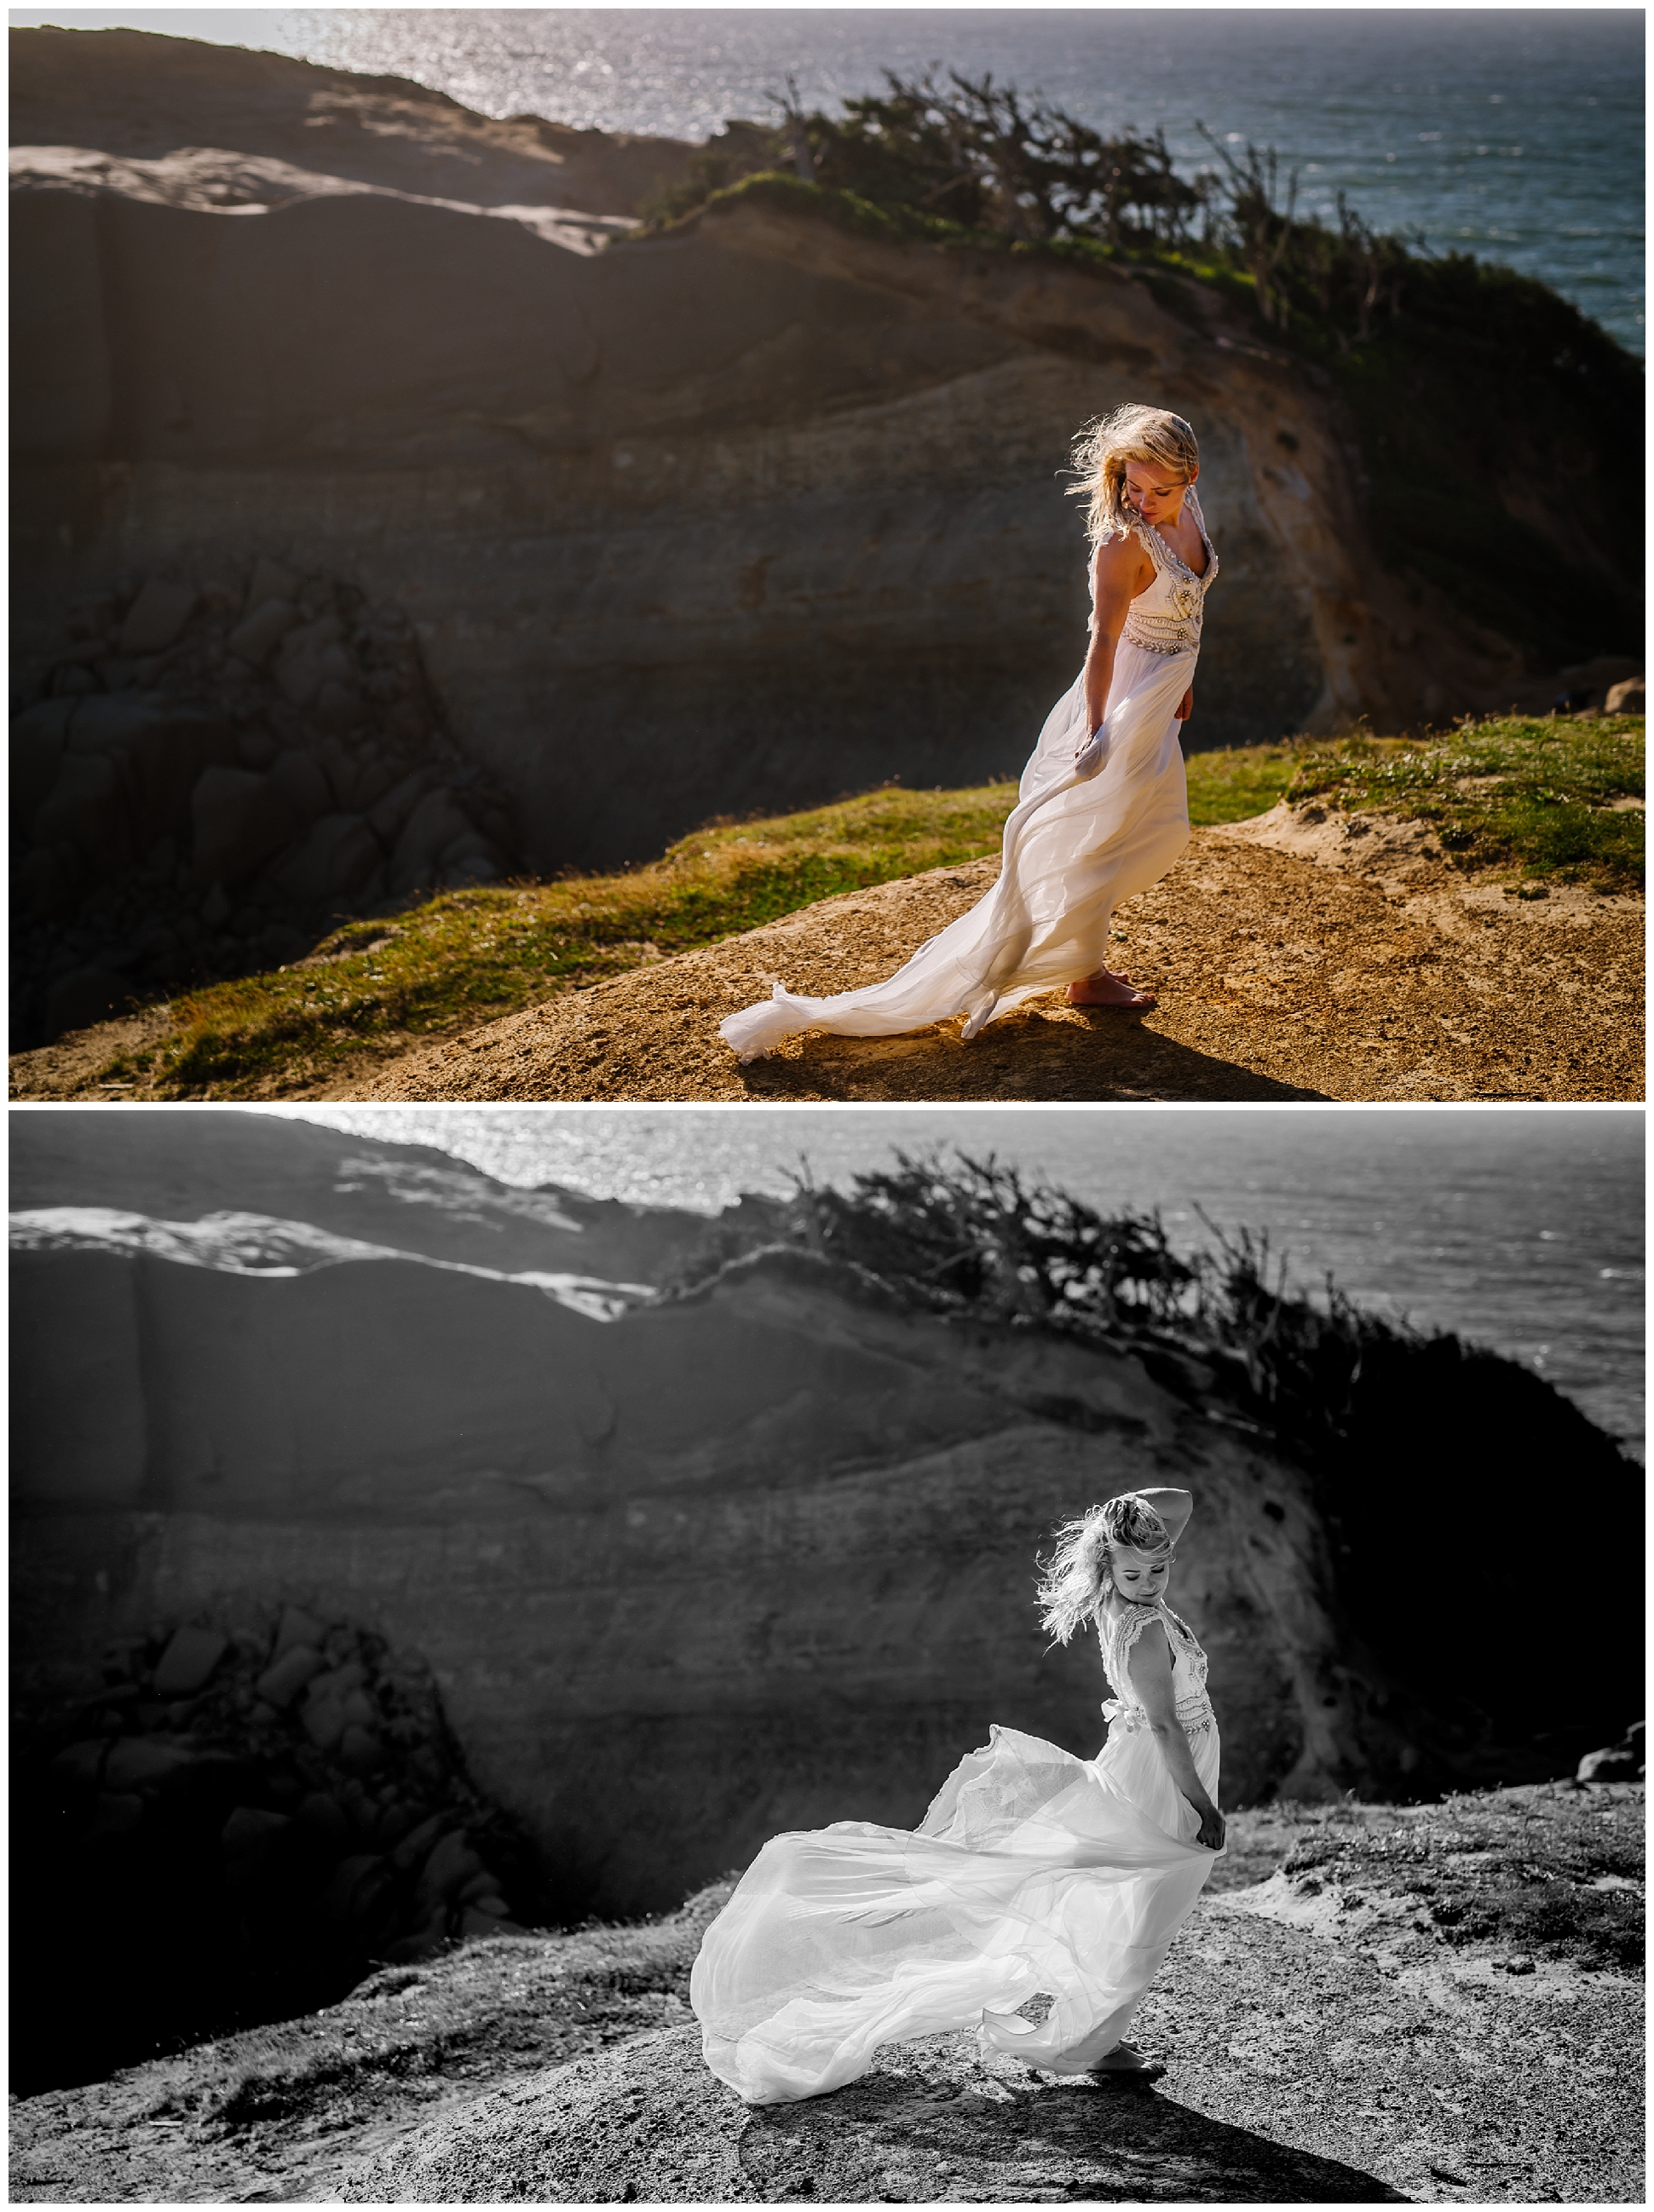 Cape-kiwanda-bridal-portrait-destination-wedding-photographer_0015.jpg